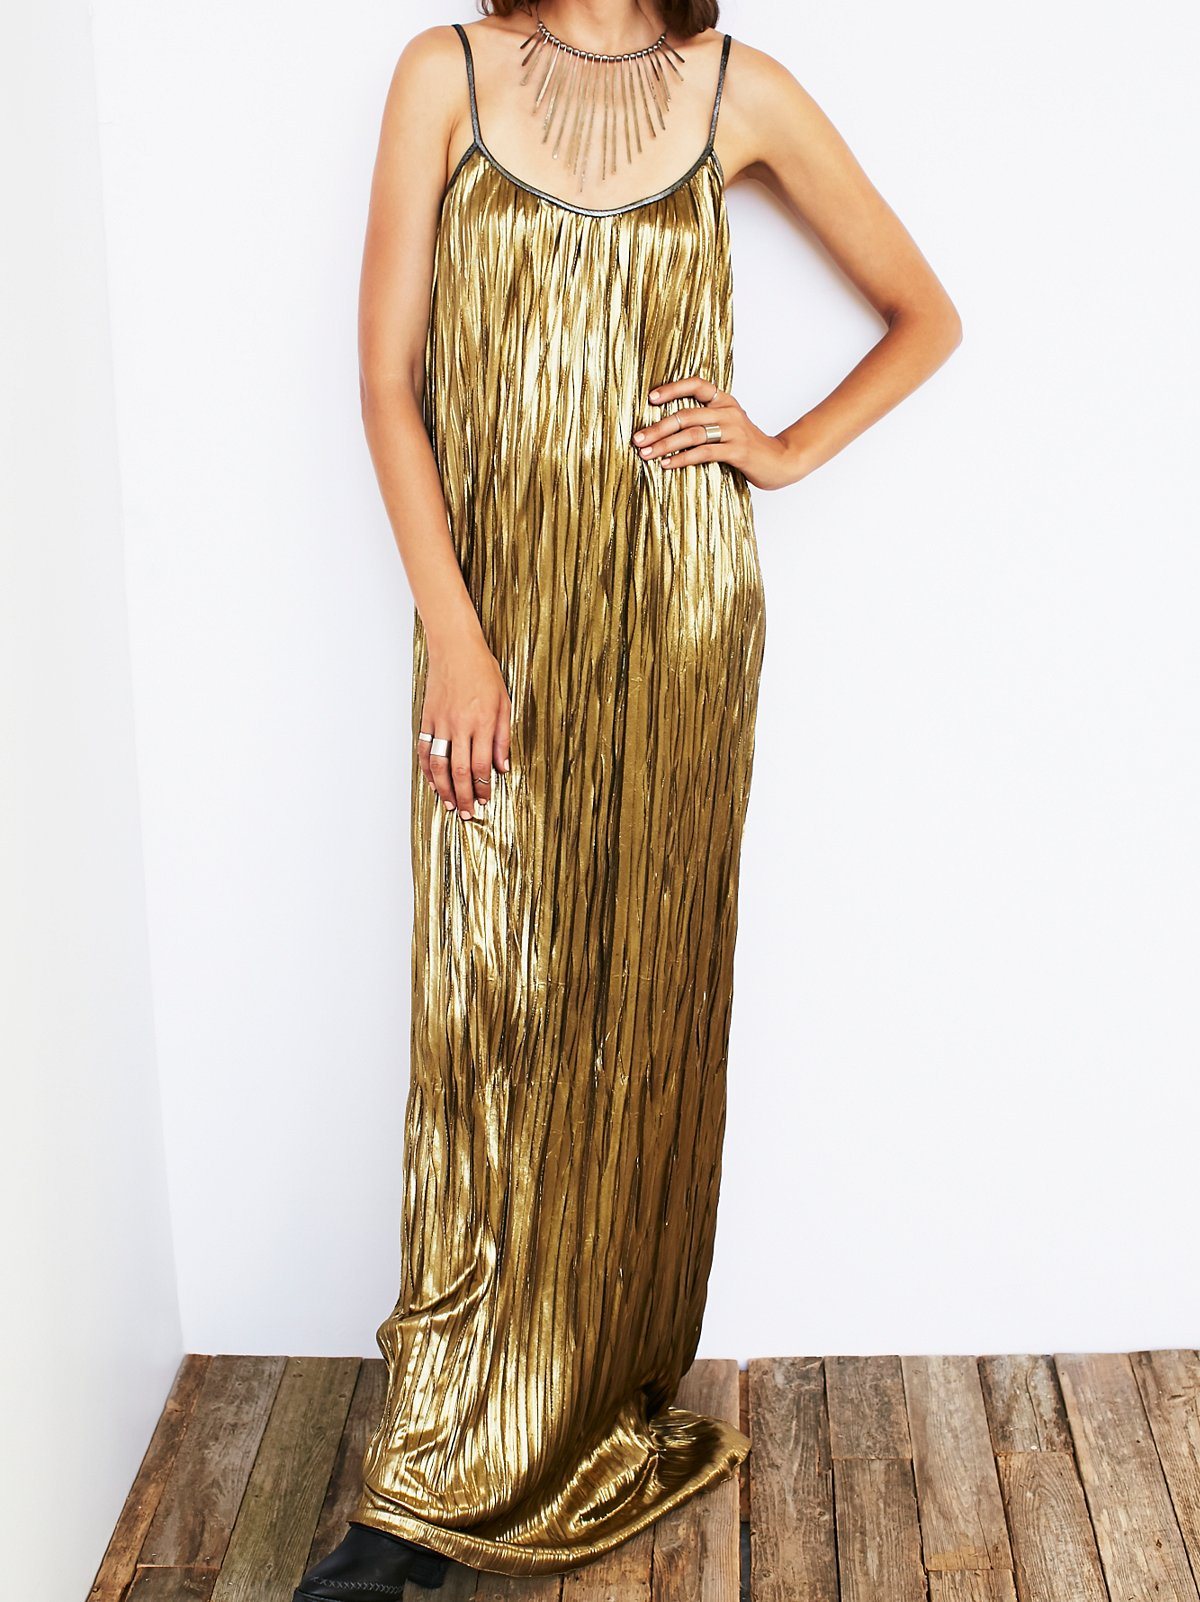 Vintage 70s Liquid Gold Dress